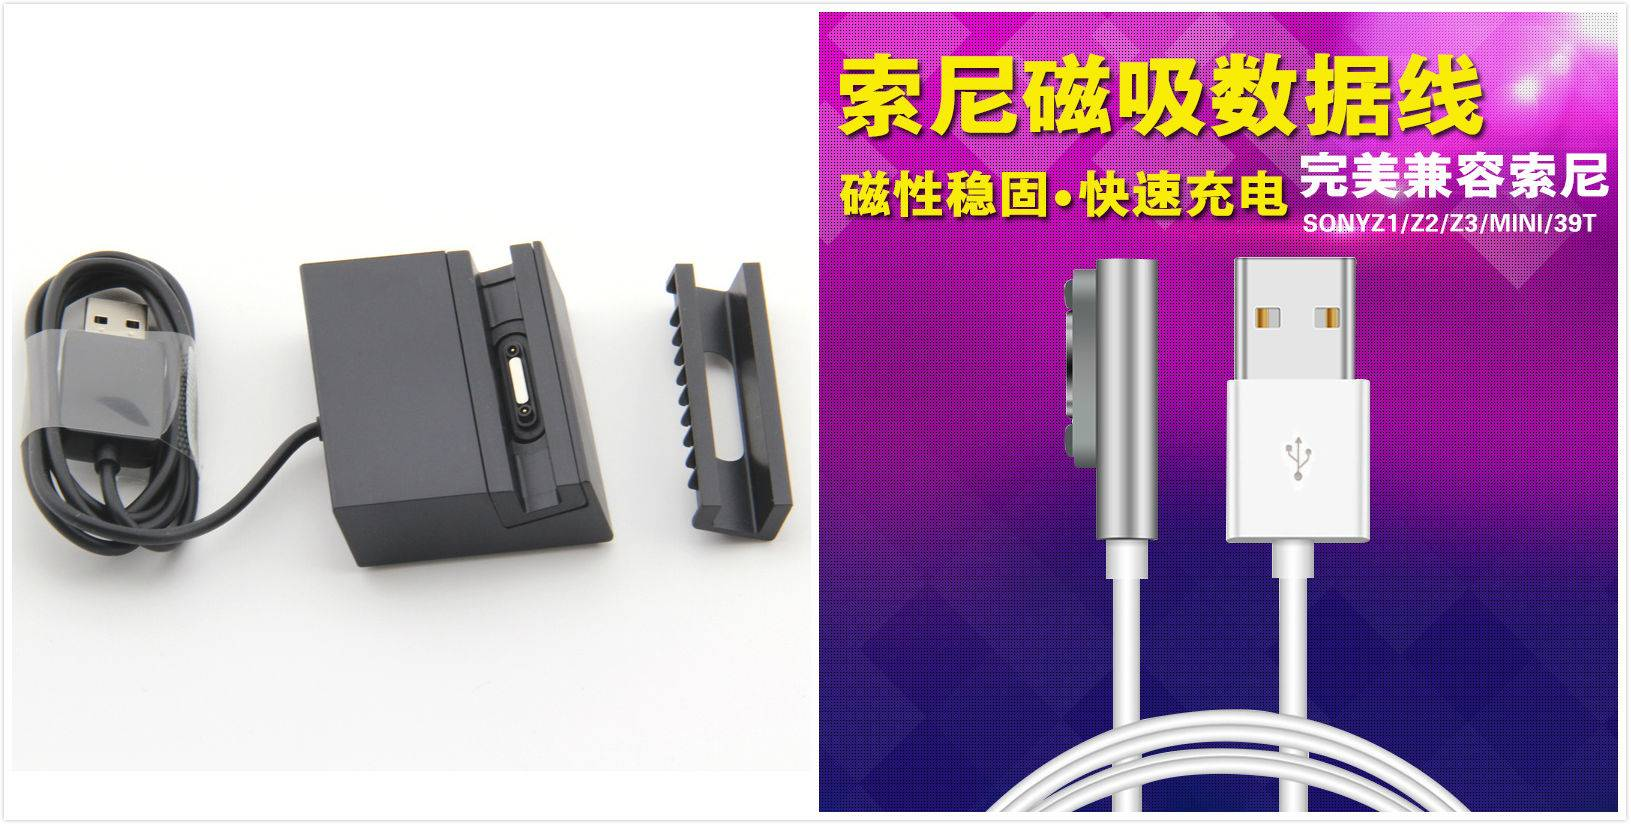 Black-DK36-USB-MagnetiCharger-Dock-For-Sony-Xperia-Z2-L50W-L50U-D6503-D6502-Charging_meitu_1.jpg